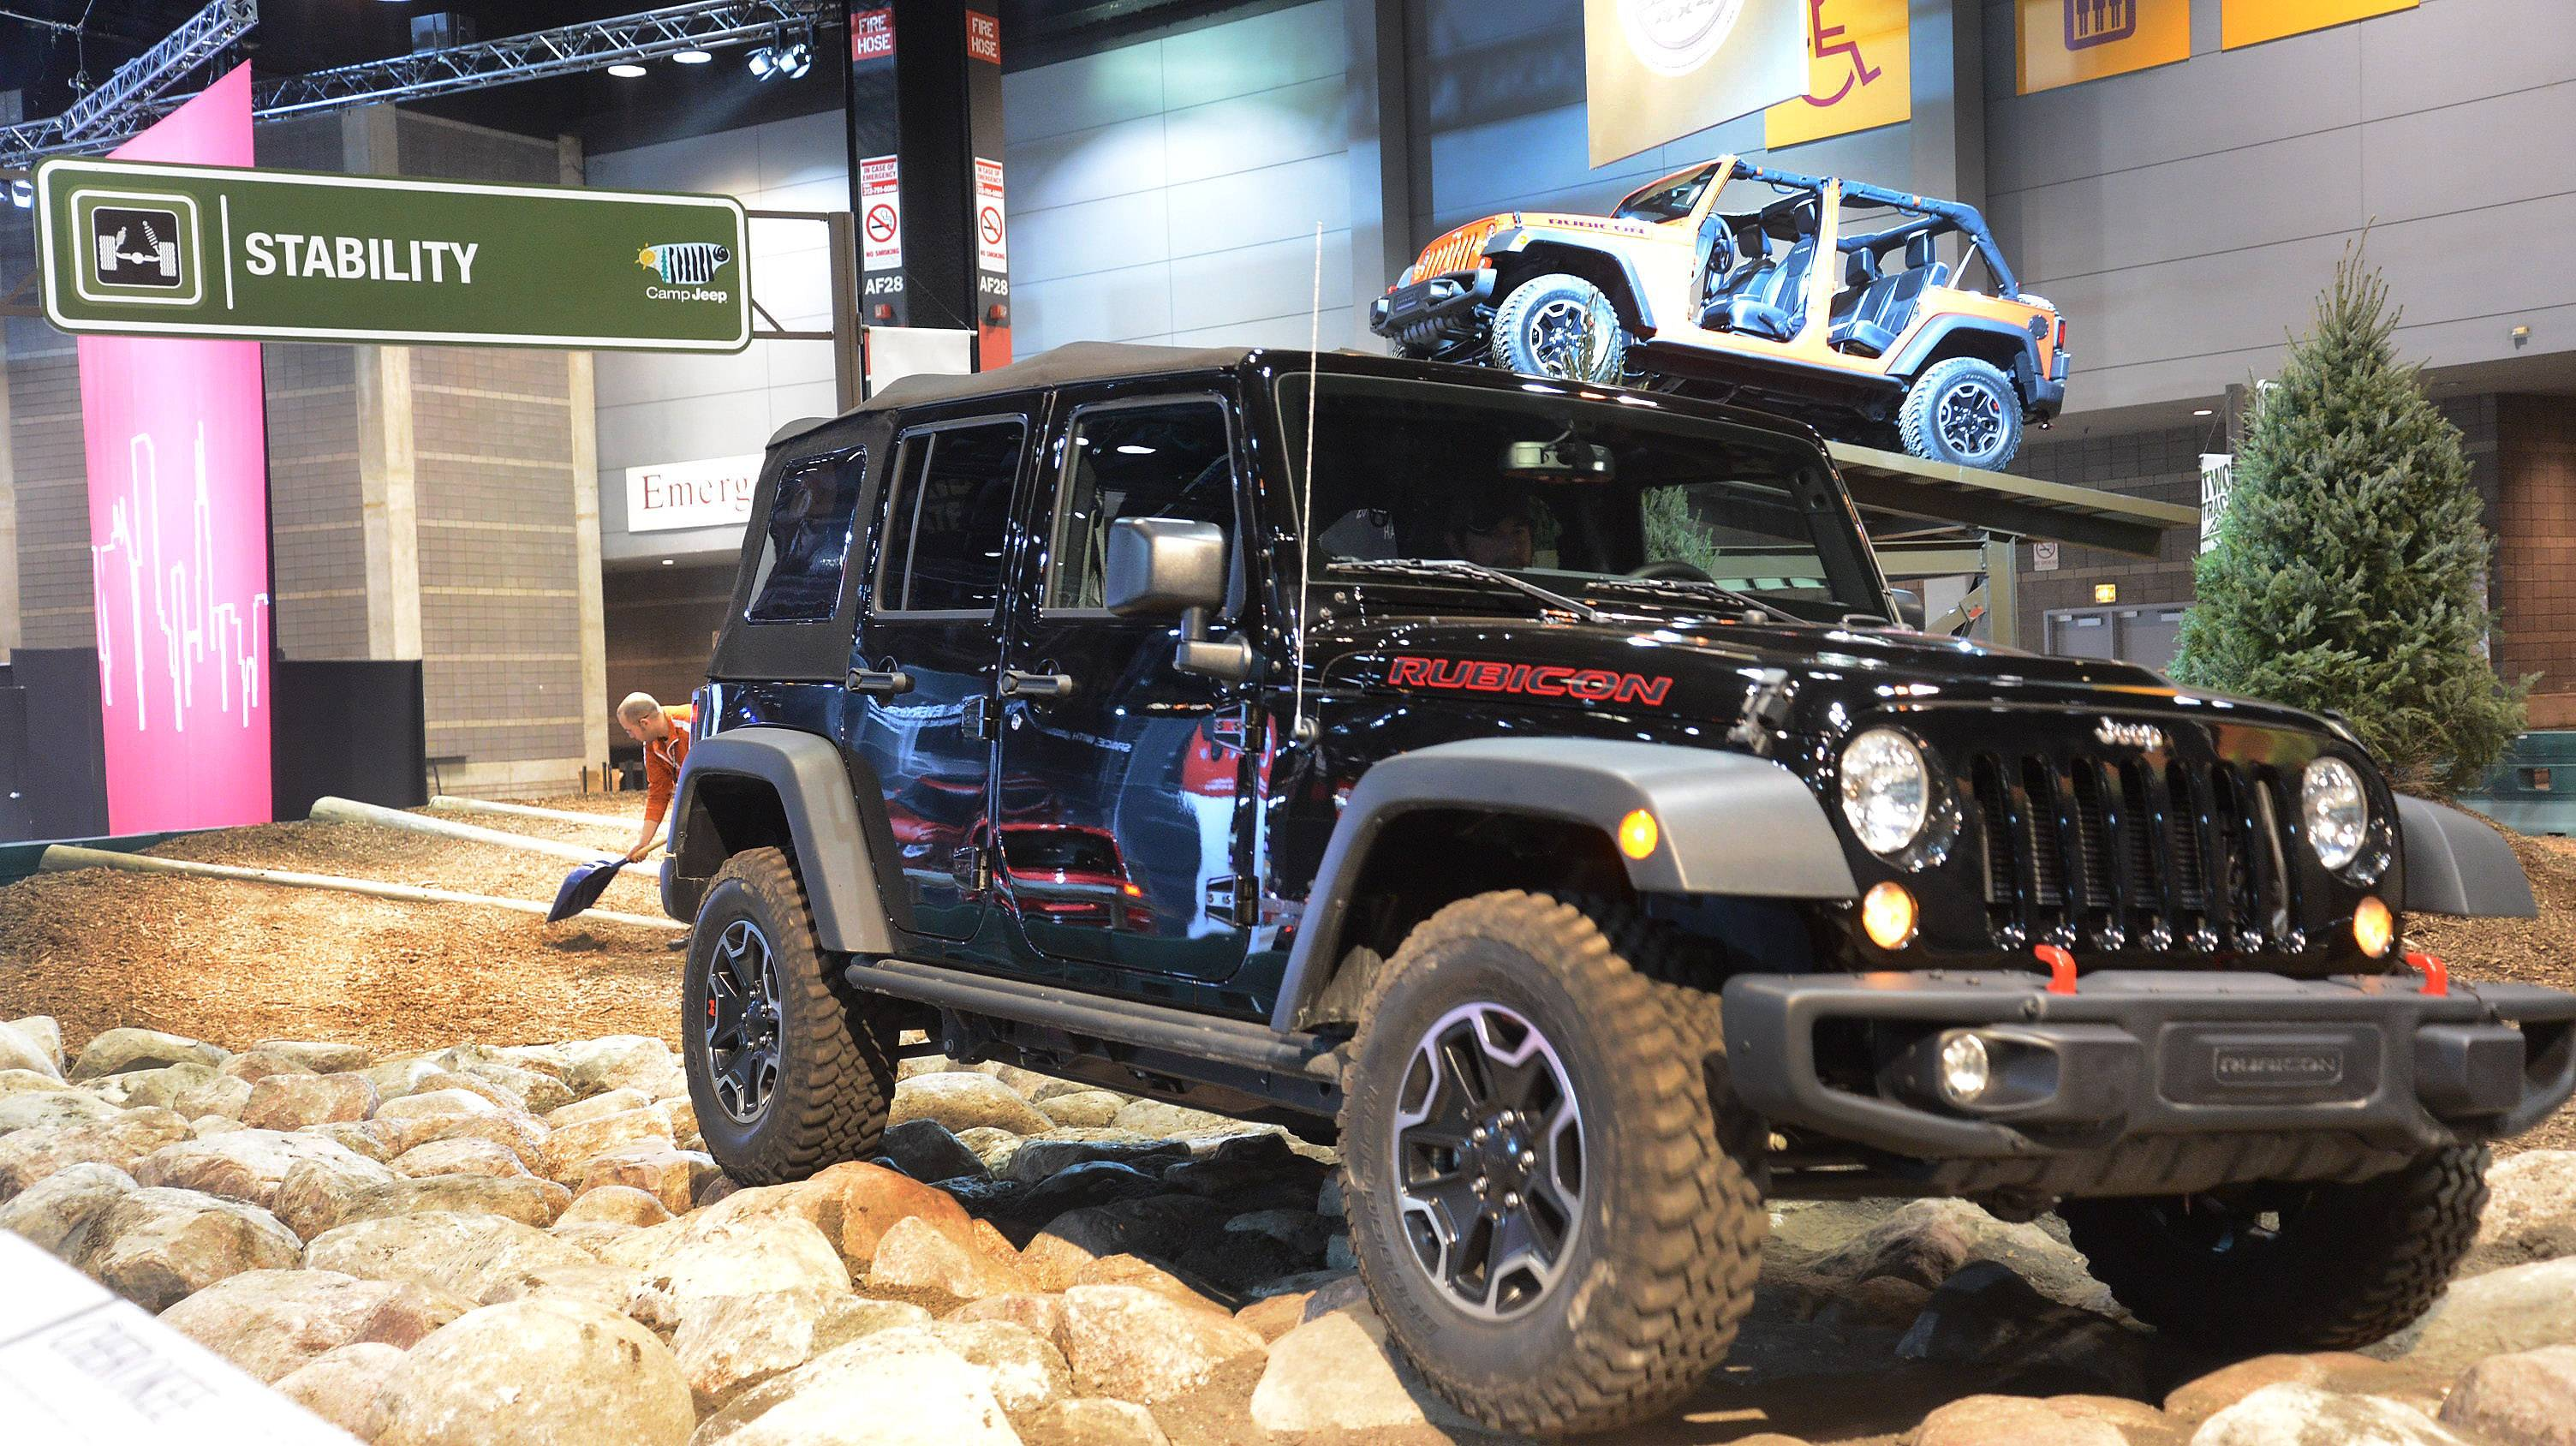 Drivers can get some safe thrills on five indoor test tracks, including one sponsored by Jeep, at the 2017 Chicago Auto Show.